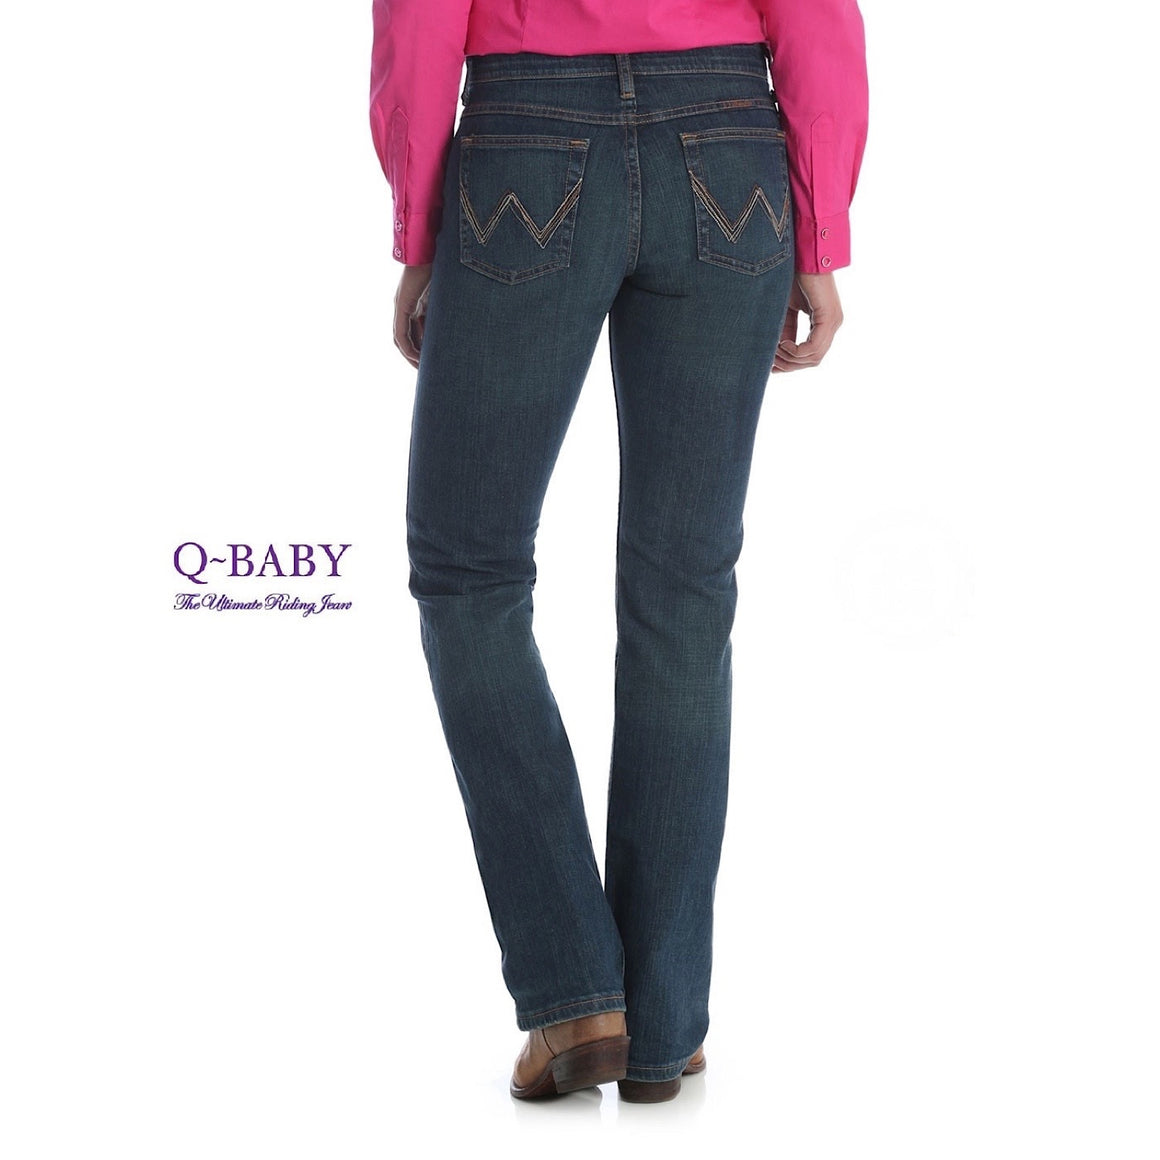 f4516fb8 Ladies Q-Baby Ultimate Riding Jean Sits Below Waist, Tuff Buck WRQ20TB